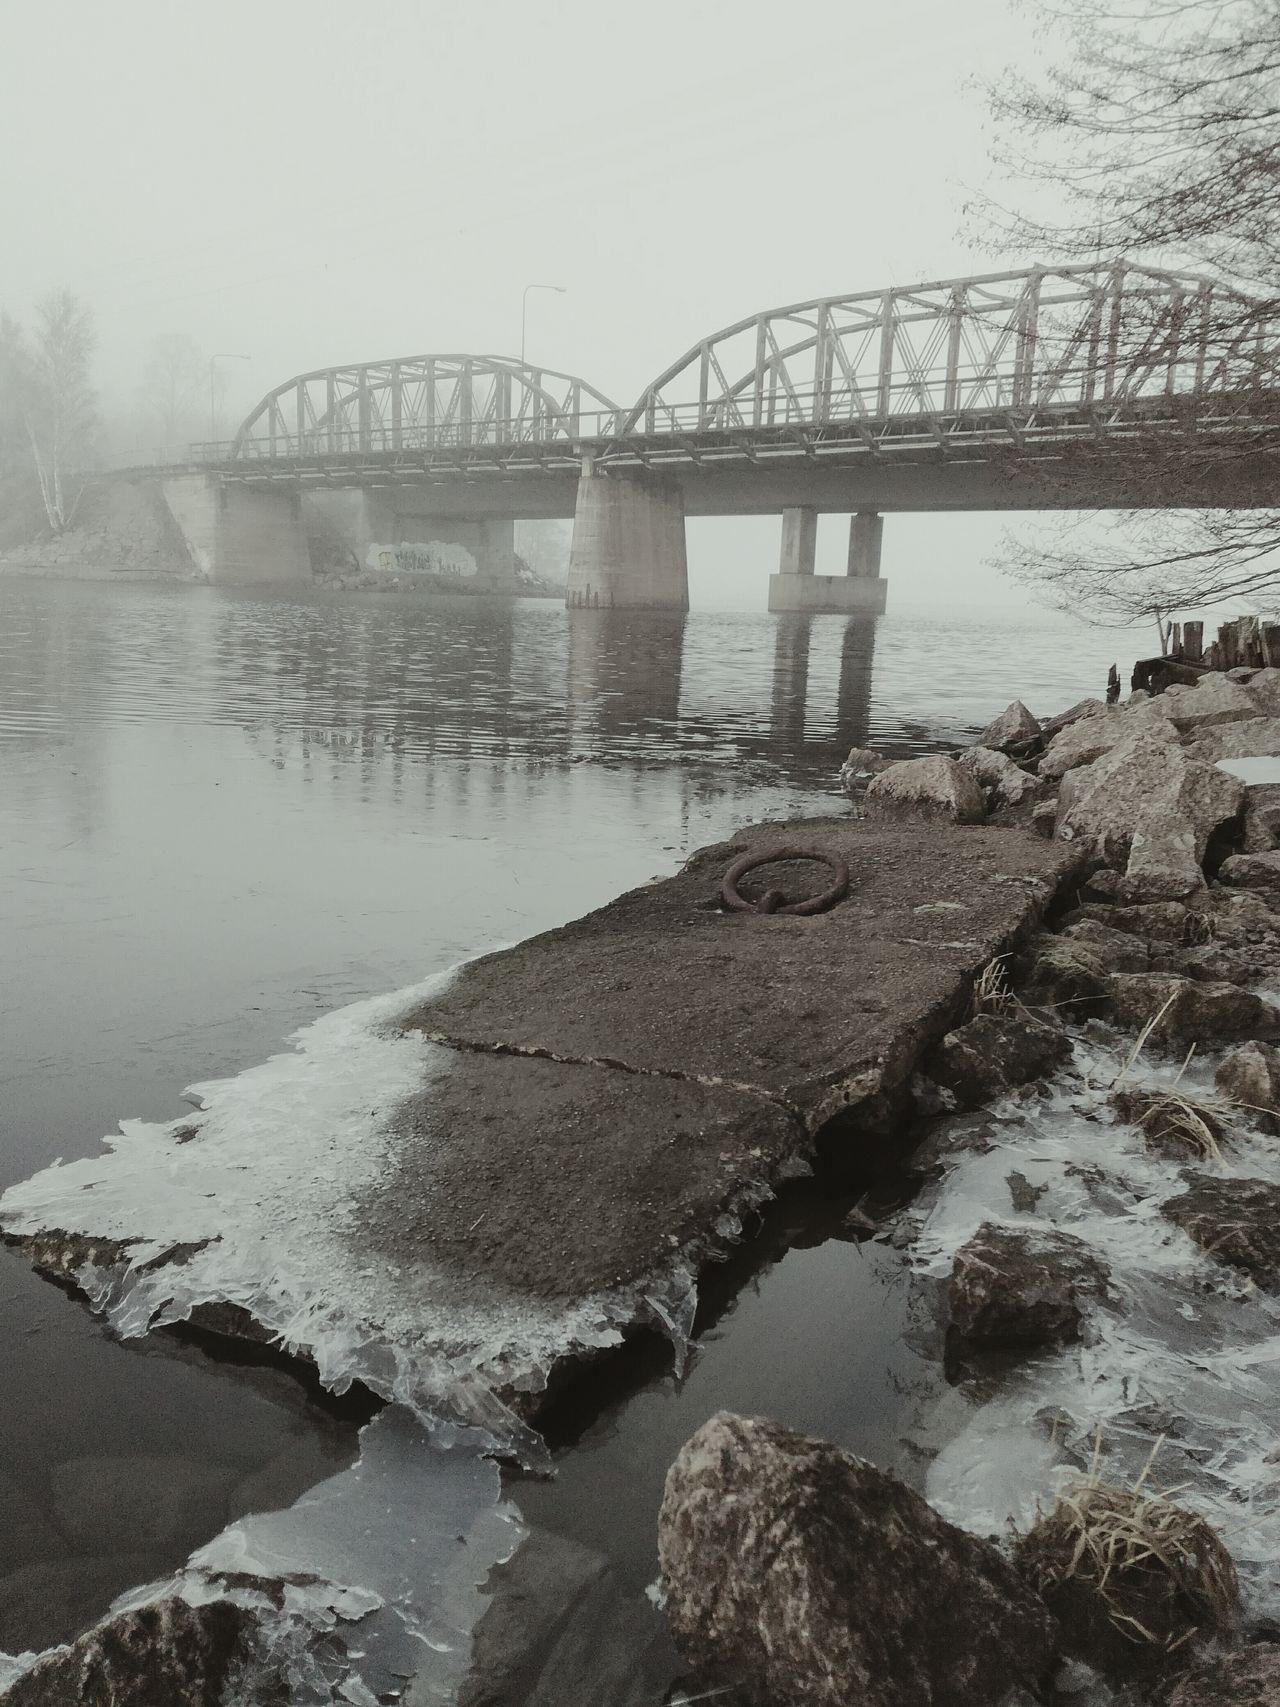 Bridge - Man Made Structure Built Structure Outdoors No People Water Fog Landscape Shades Of Nature By The Sea Wintertime Ruins Local History Past Abandoned_junkies Industrial Finland Halla Abandonedplaces Architecture Shades Of Grey Stones & Water Foggy Weather Old Bridge Railway Bridge Iron Bridge